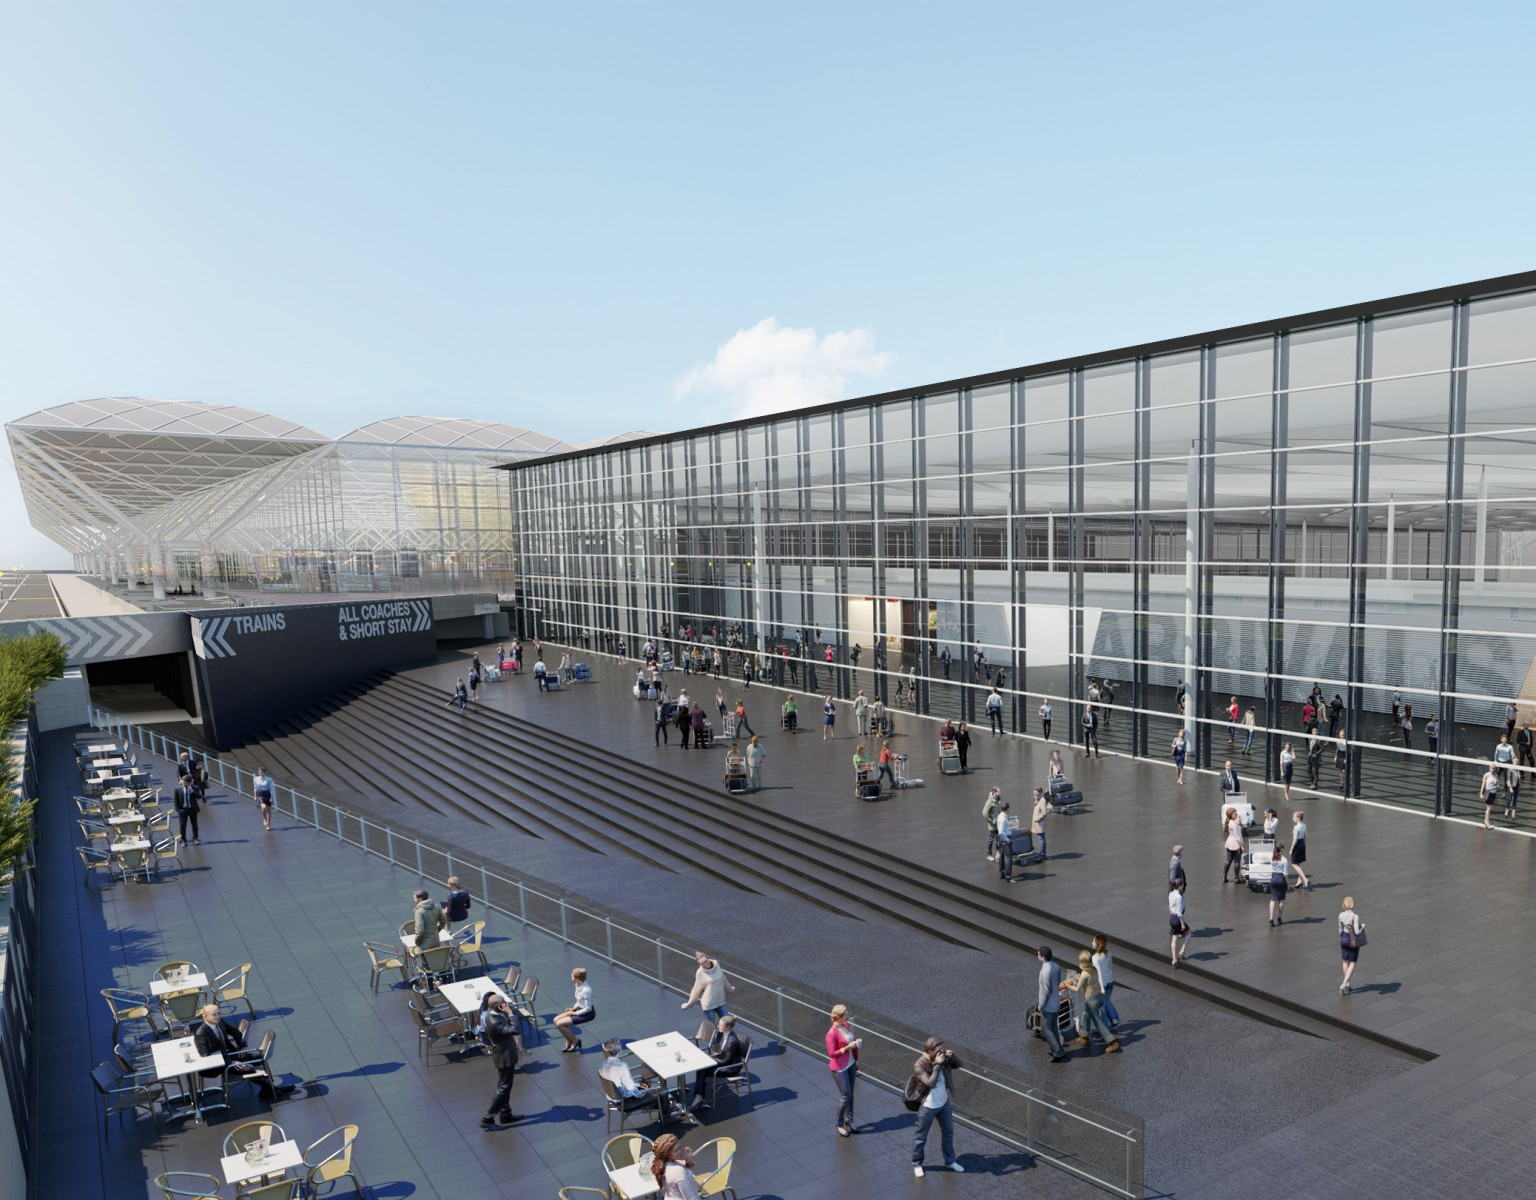 Stansted Airport Transformation image 1